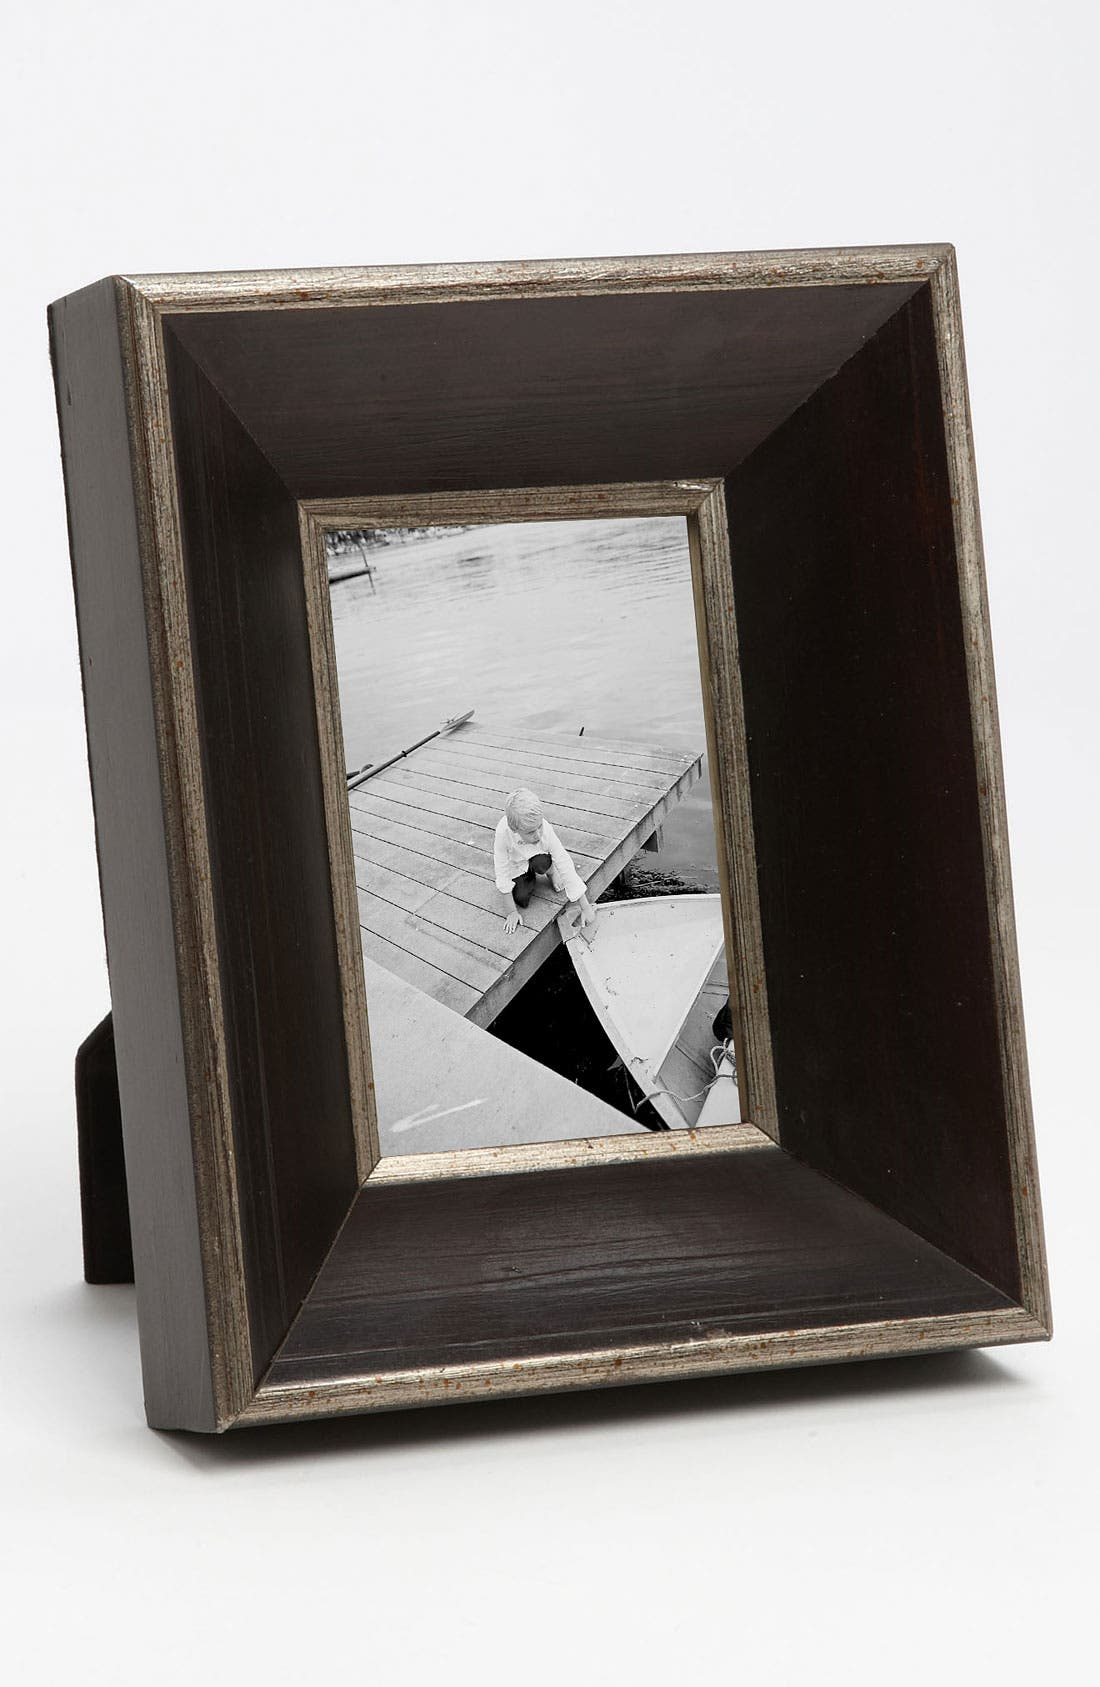 Alternate Image 1 Selected - Beveled Wood Picture Frame (4x6)